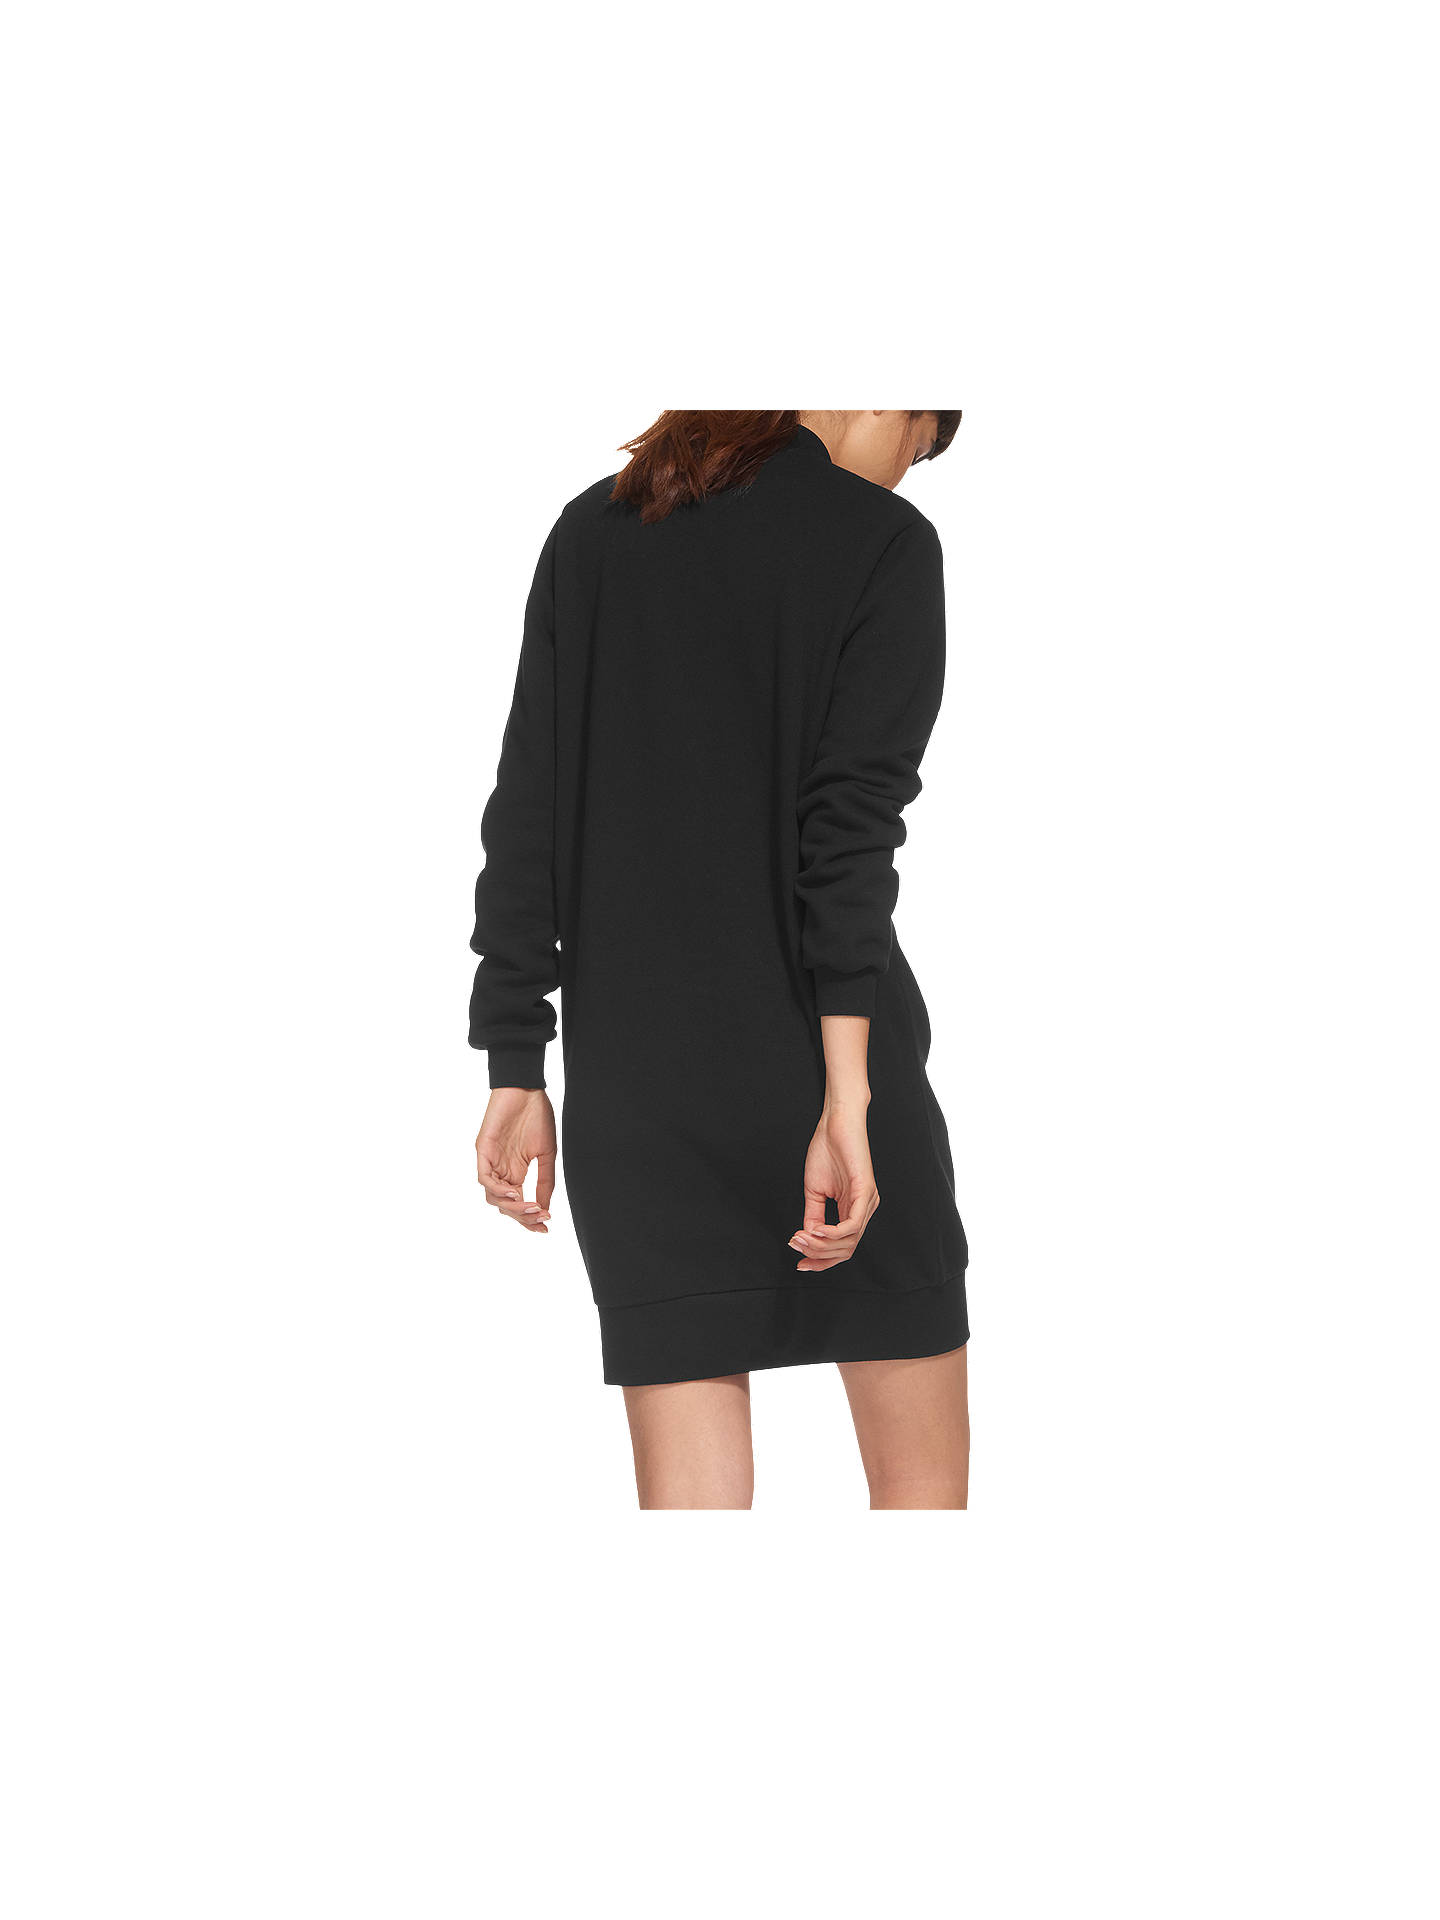 a7323ab3e6d1cb ... Buy Whistles Zip Ribbed Neck Jersey Dress, Black, XS Online at  johnlewis.com ...